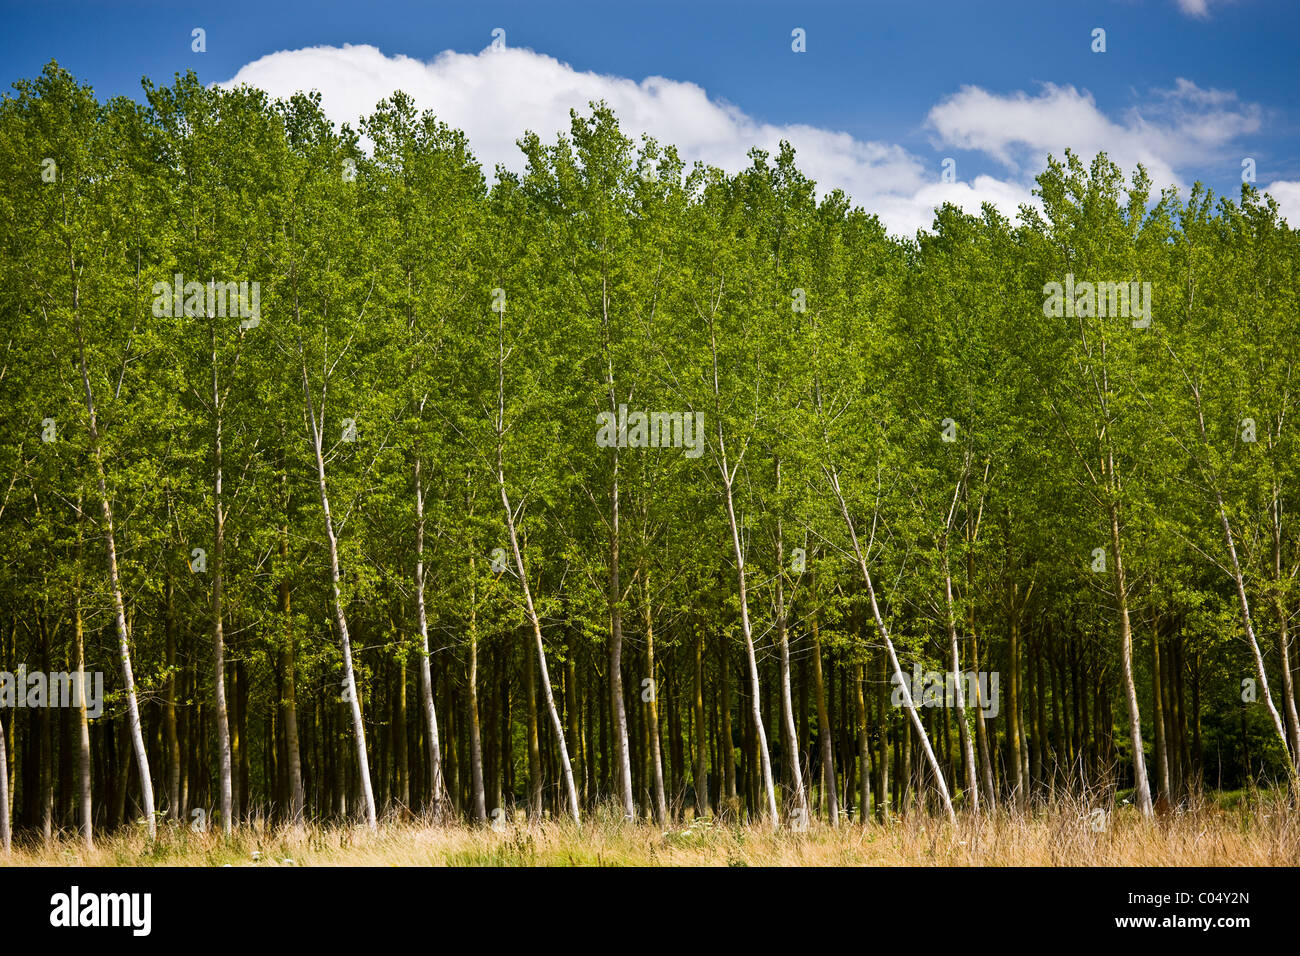 Copse of silver birch trees at Rigny Usse in the Loire Valley - Stock Image